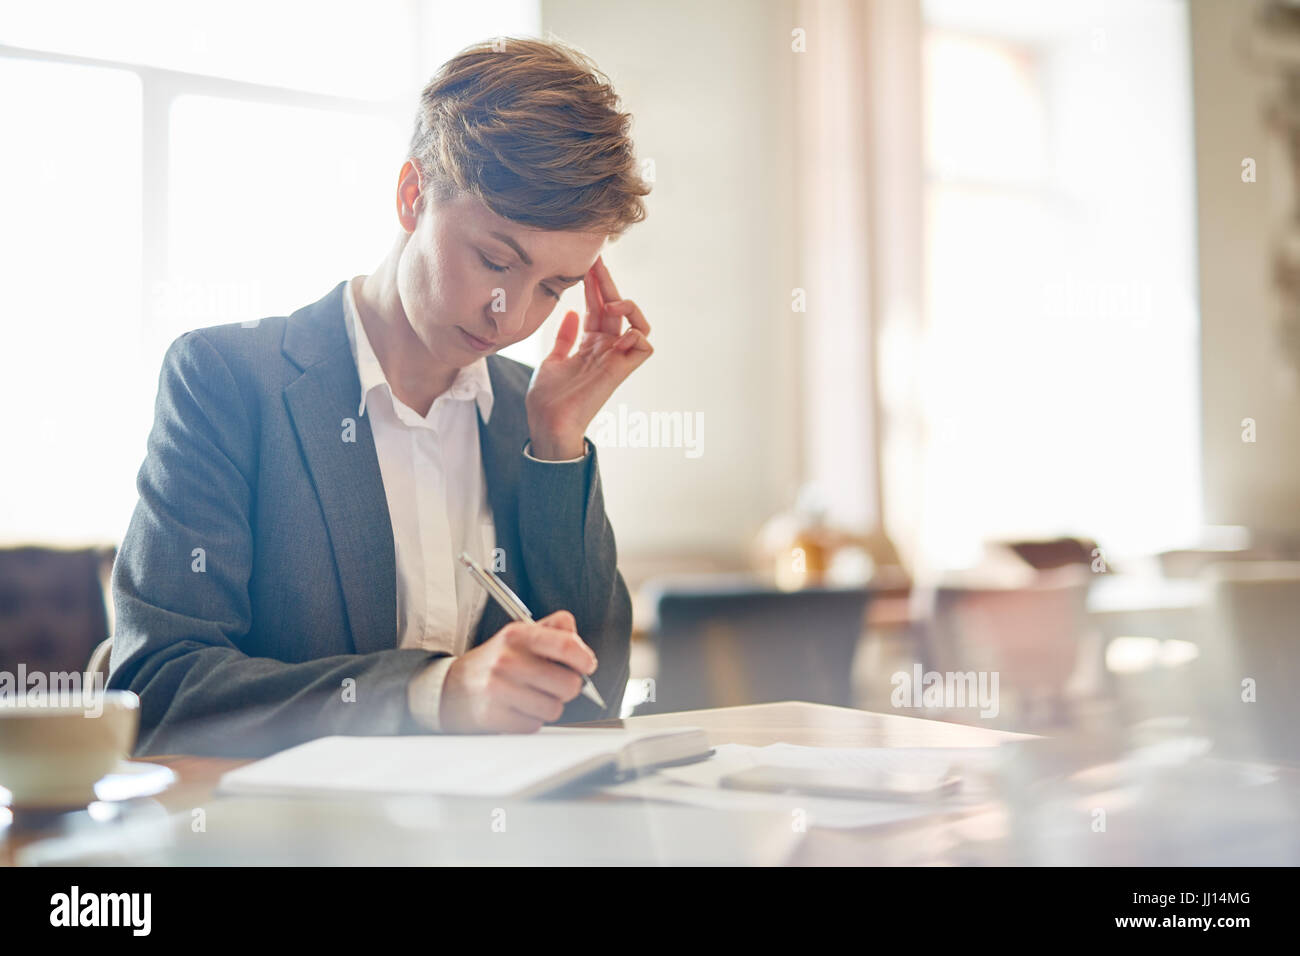 Concentration - Stock Image